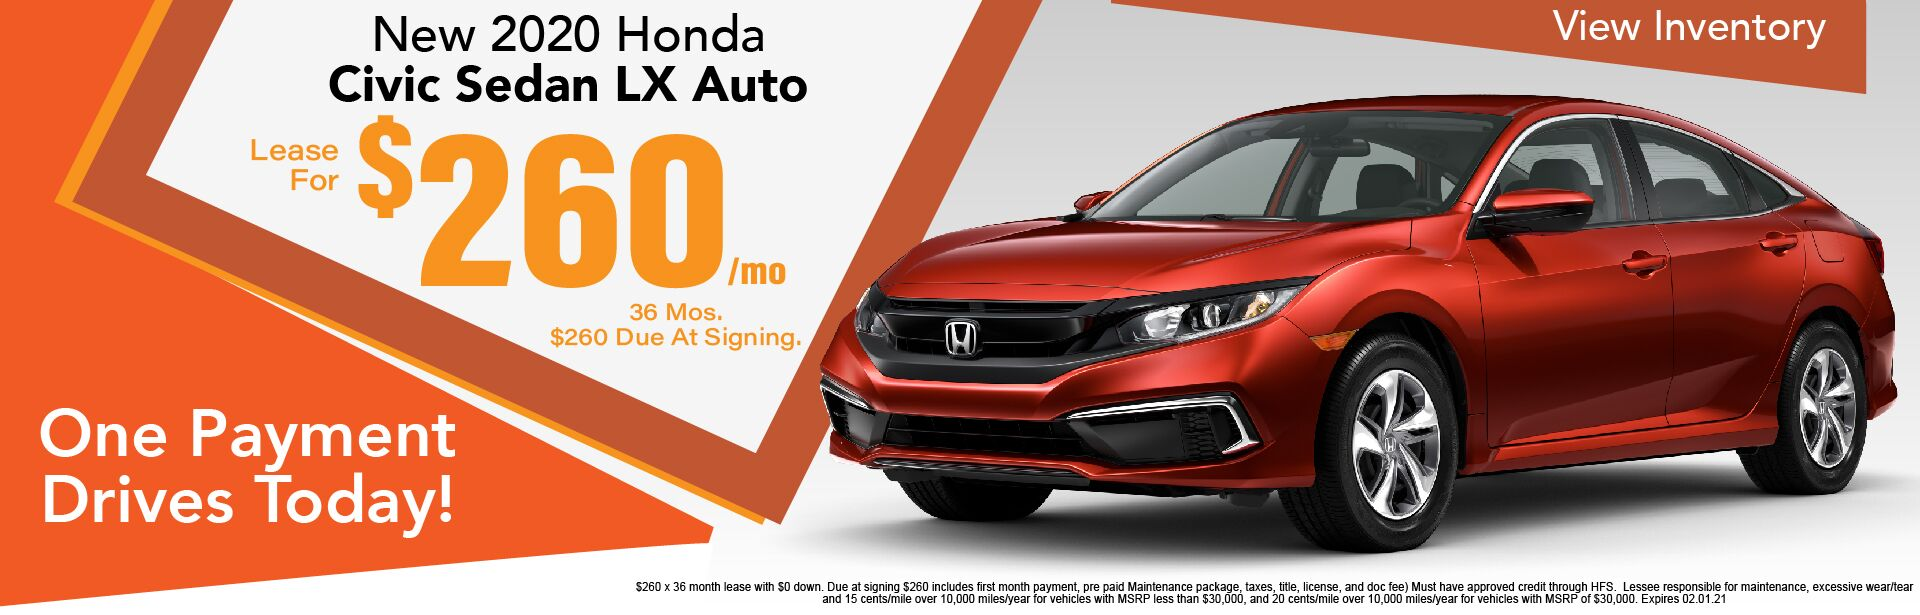 2020 Honda Civic Sedan LX $260/Month Leased x 36 Months